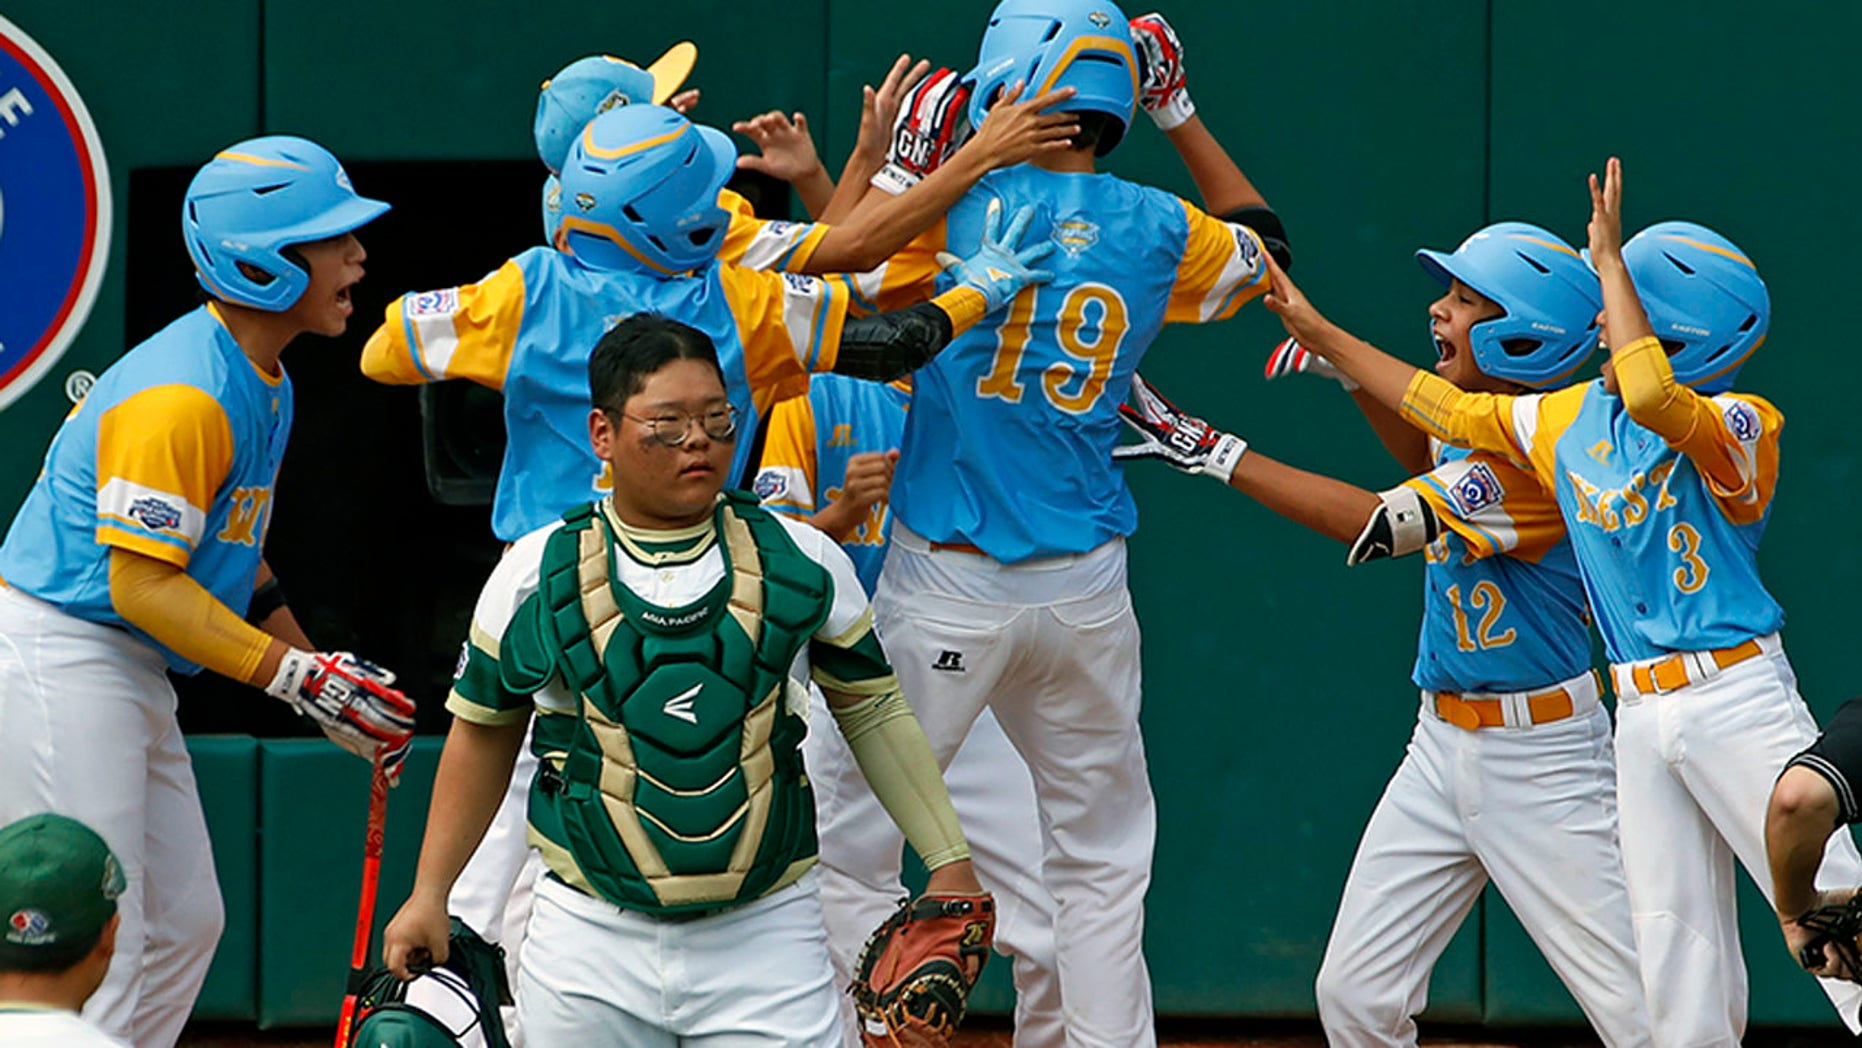 Mana Lau Kong (19) celebrates with his teammates after hitting a home run in the bottom of the first inning of Sunday's Little League World Series Championship game.